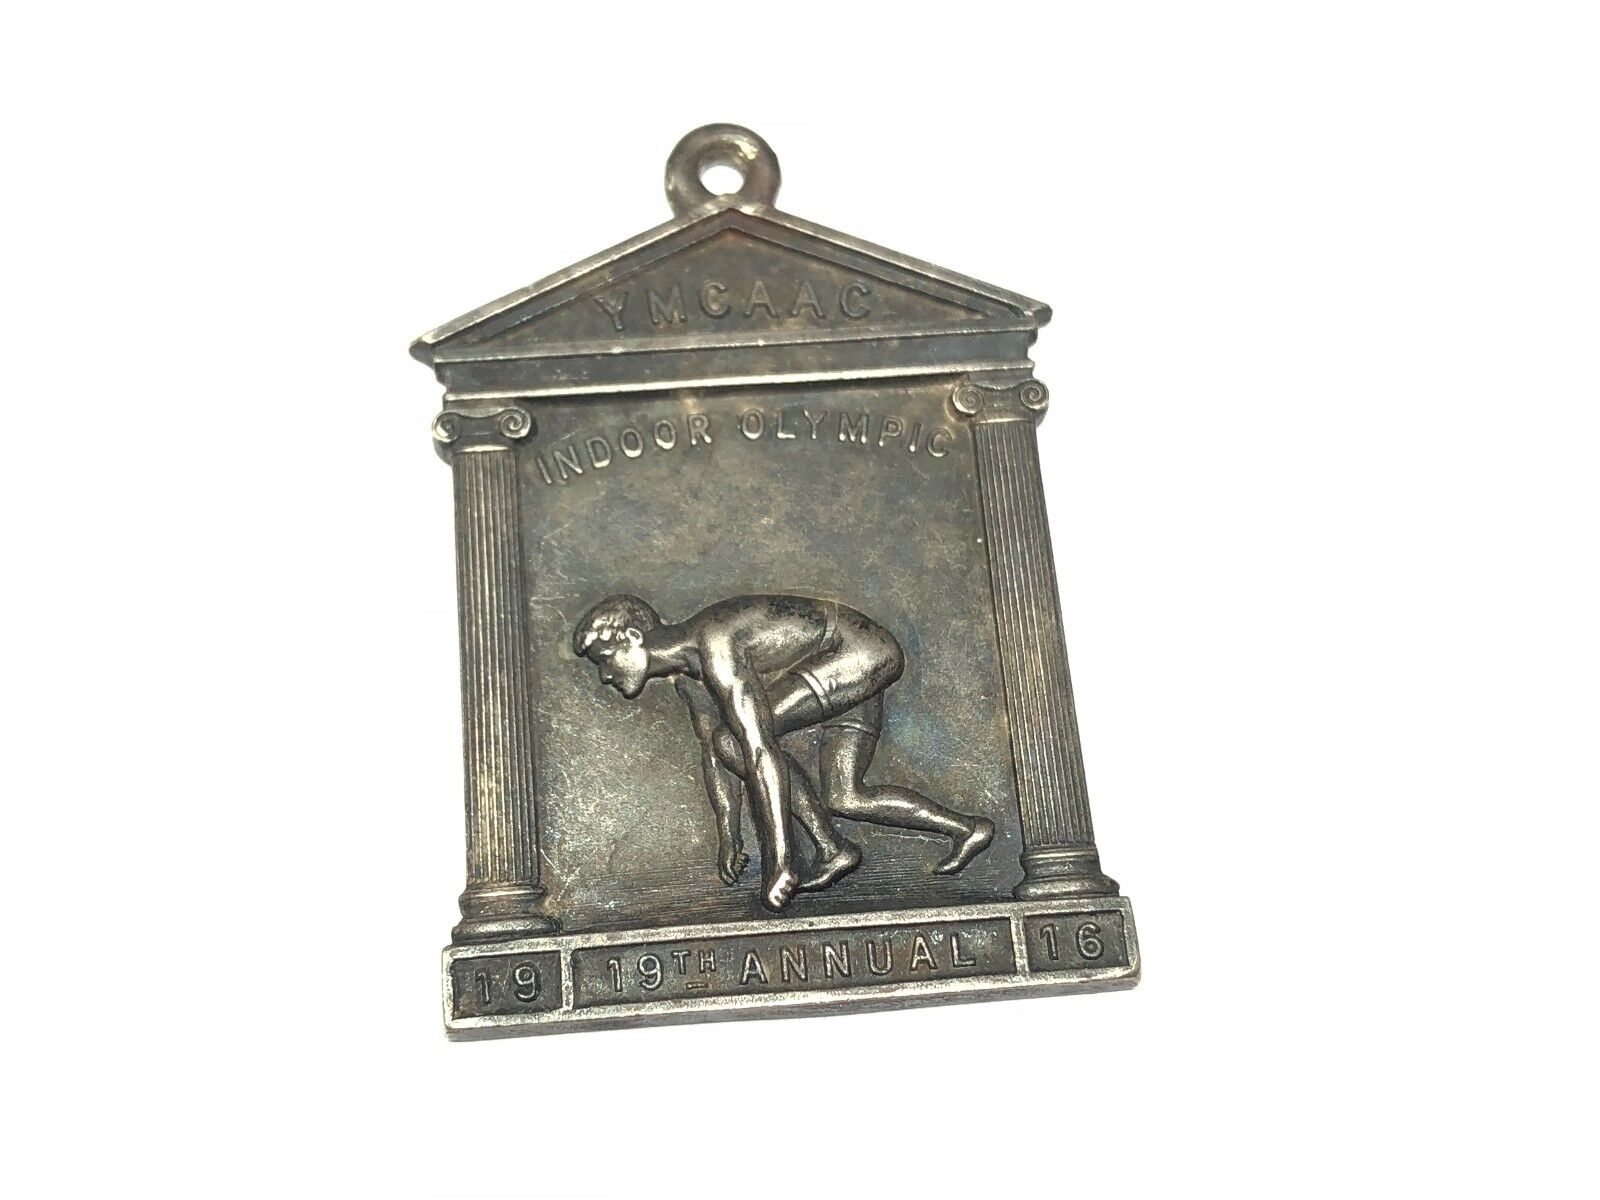 Original Vintage 1916 YMCAAC Indoor Olympic 19th Annual Running Medal Signed